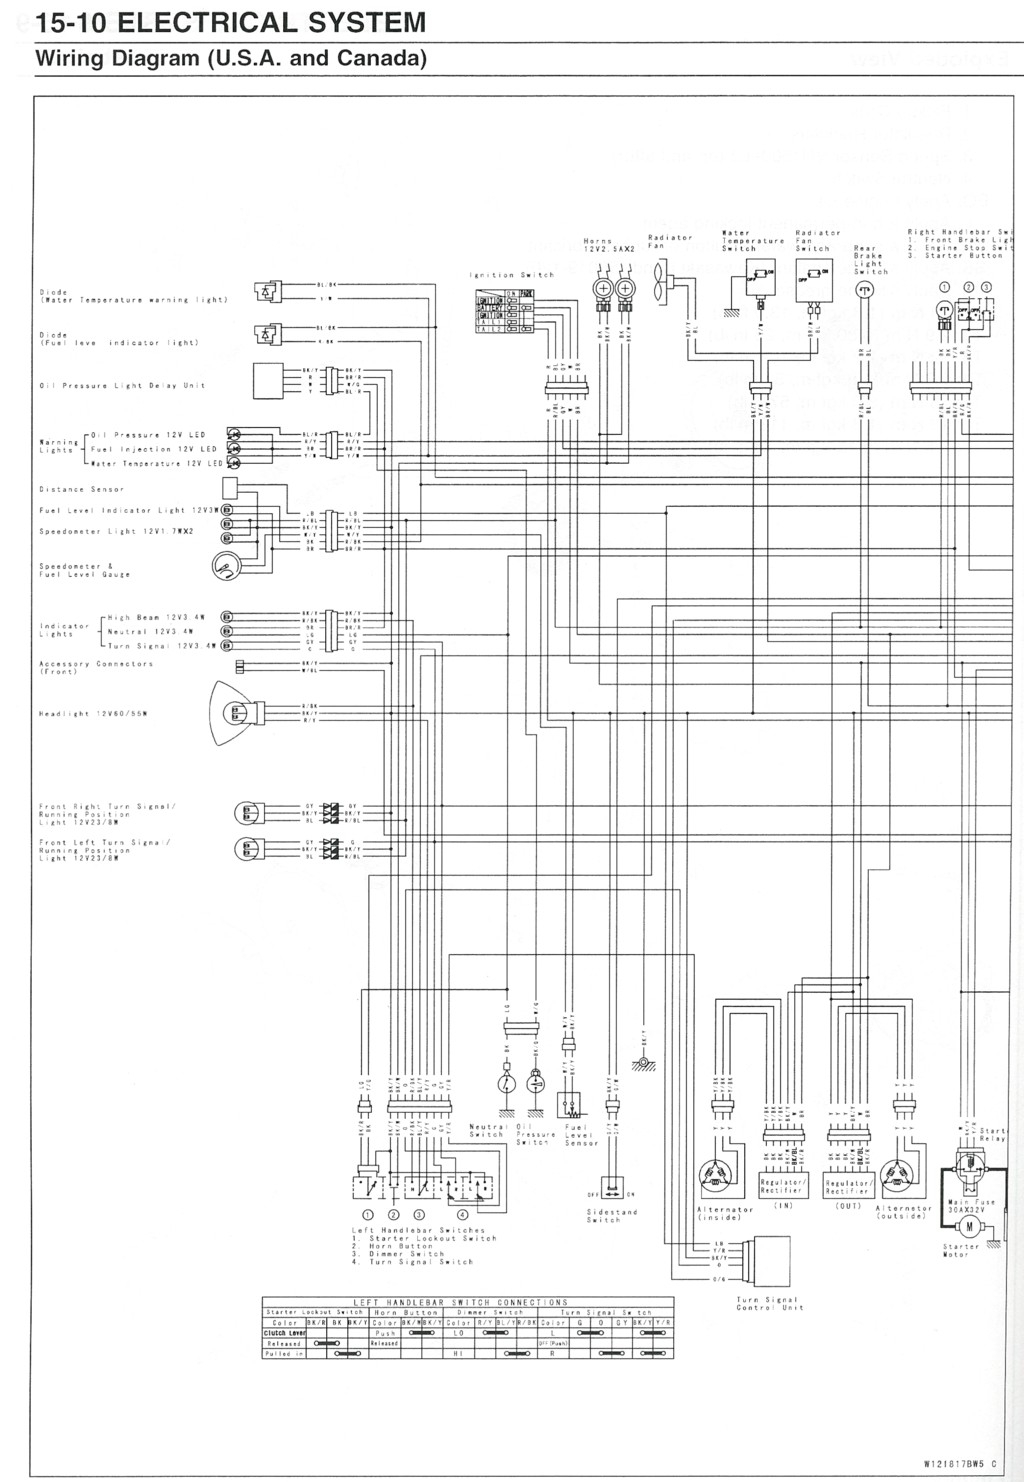 nomad_wiring_diagram_carbed_p1 vulcan wiring diagrams gadget's fixit page 2003 Vulcan Mean Streak at bayanpartner.co